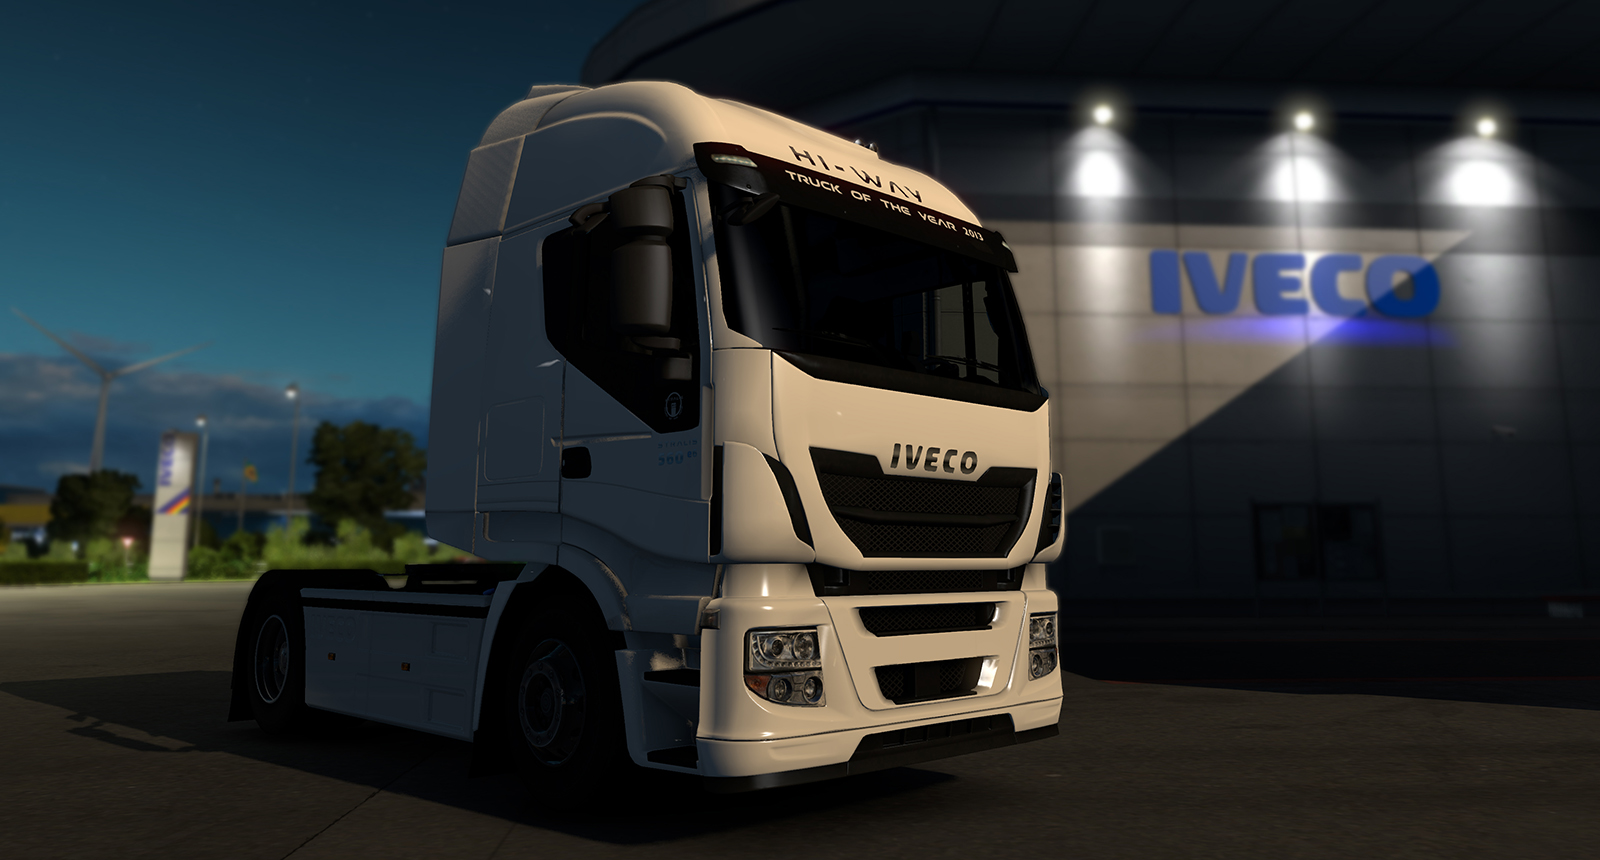 Euro truck simulator 2 goes 64 bit 1 16 update now live